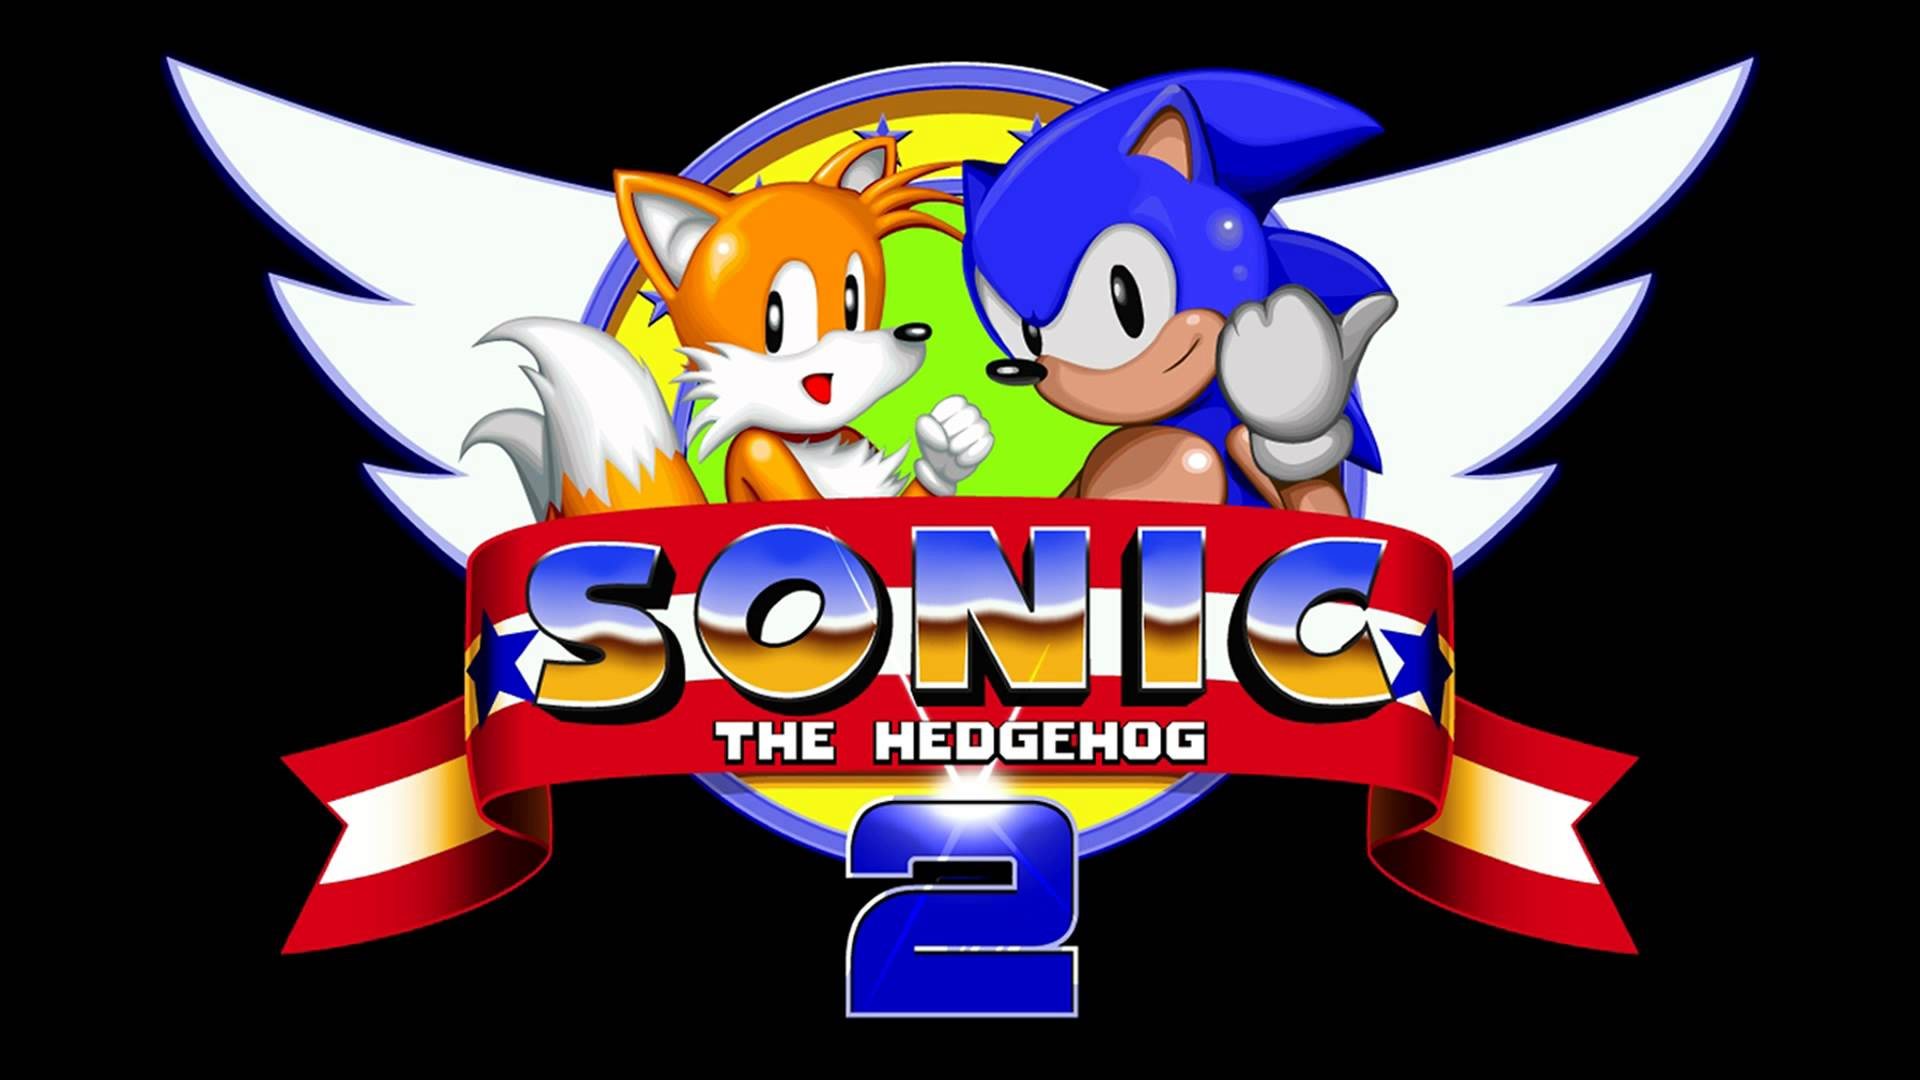 Sonic 2 coming to Nintendo 3DS; Features 3D Visuals